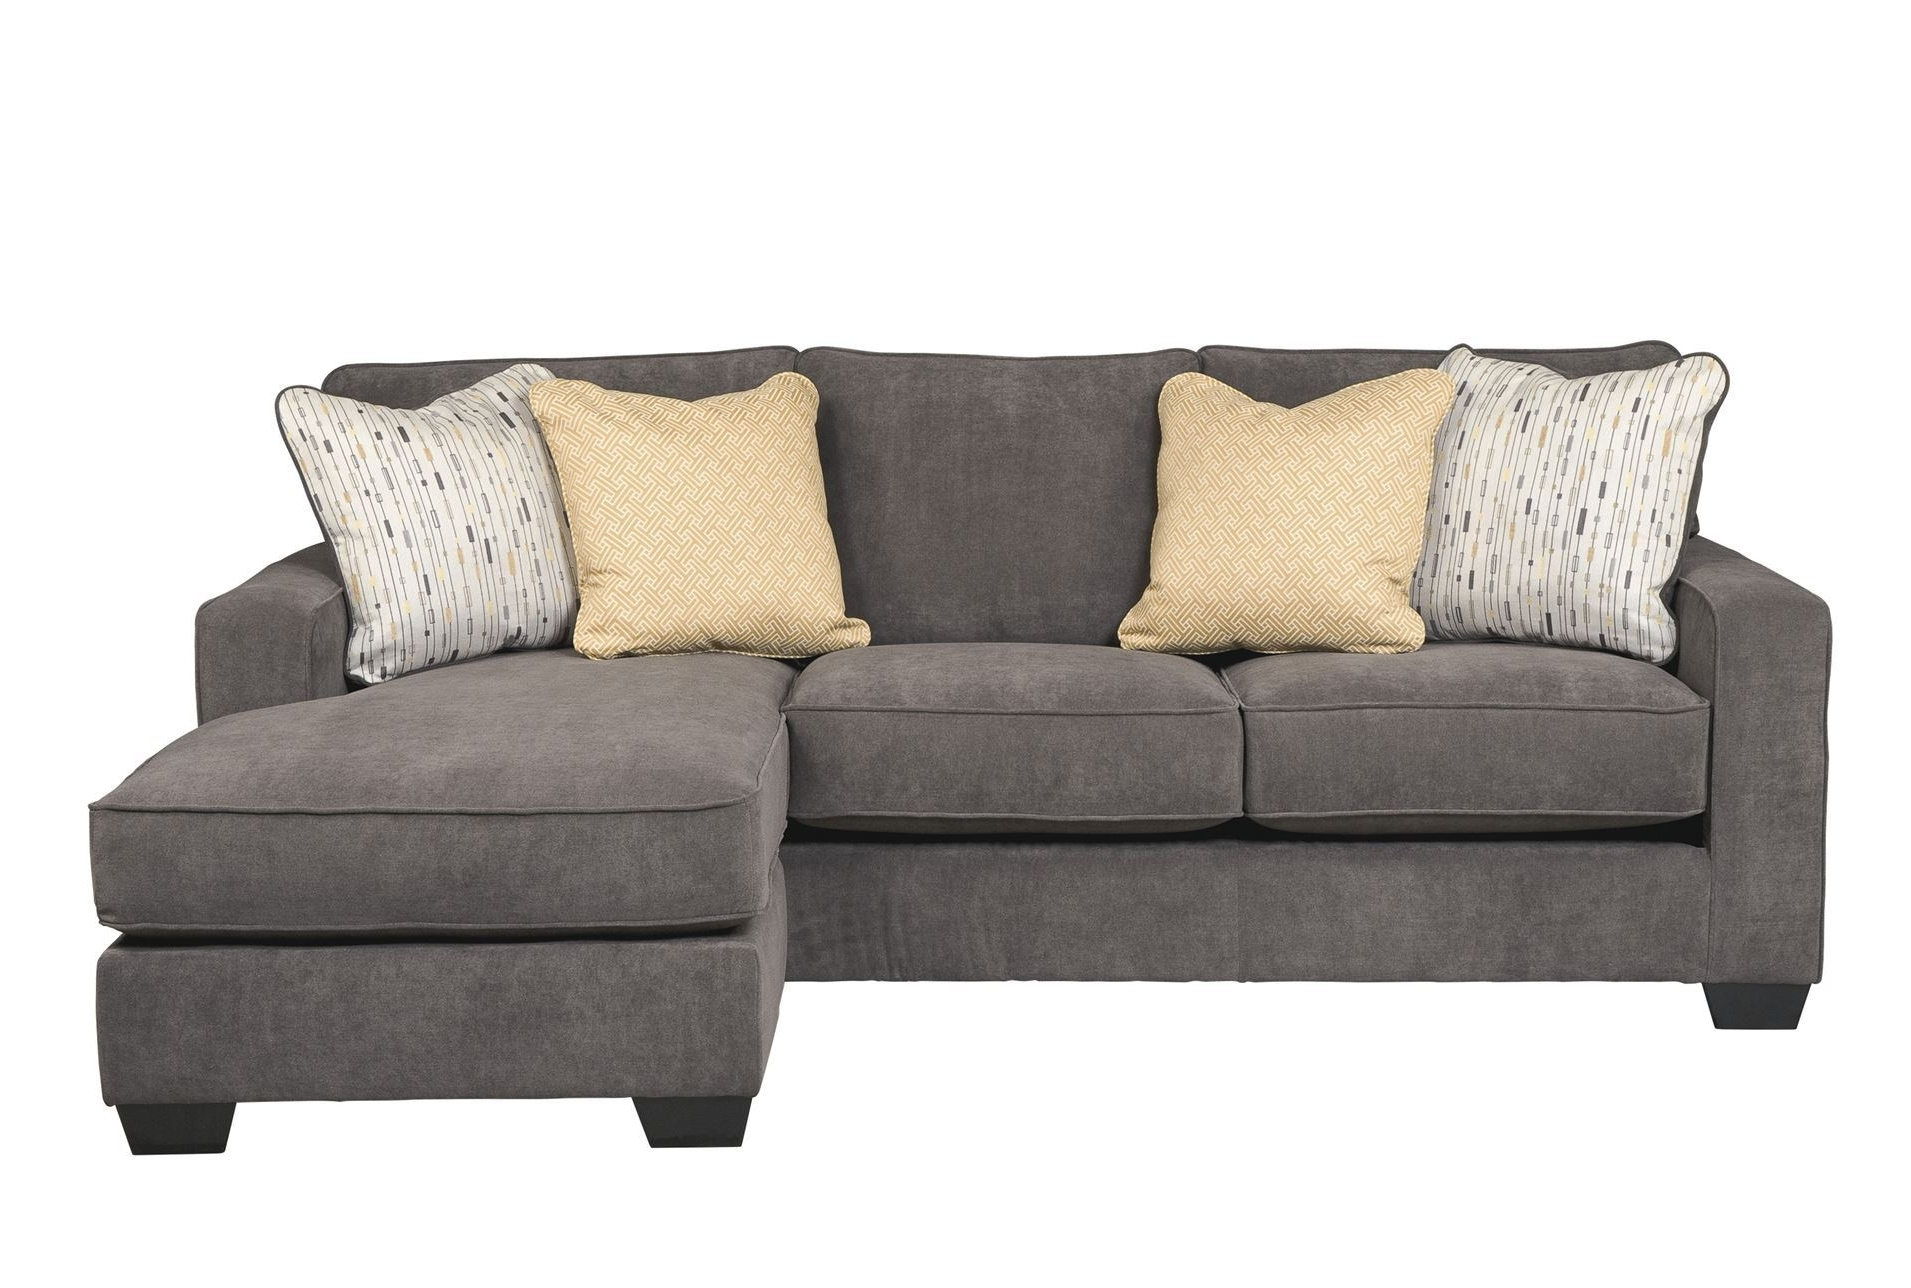 Apartment Size Sectional Sofa With Chaise Cheap Sectional Sofas Intended For Widely Used Small Chaise Sofas (View 2 of 15)